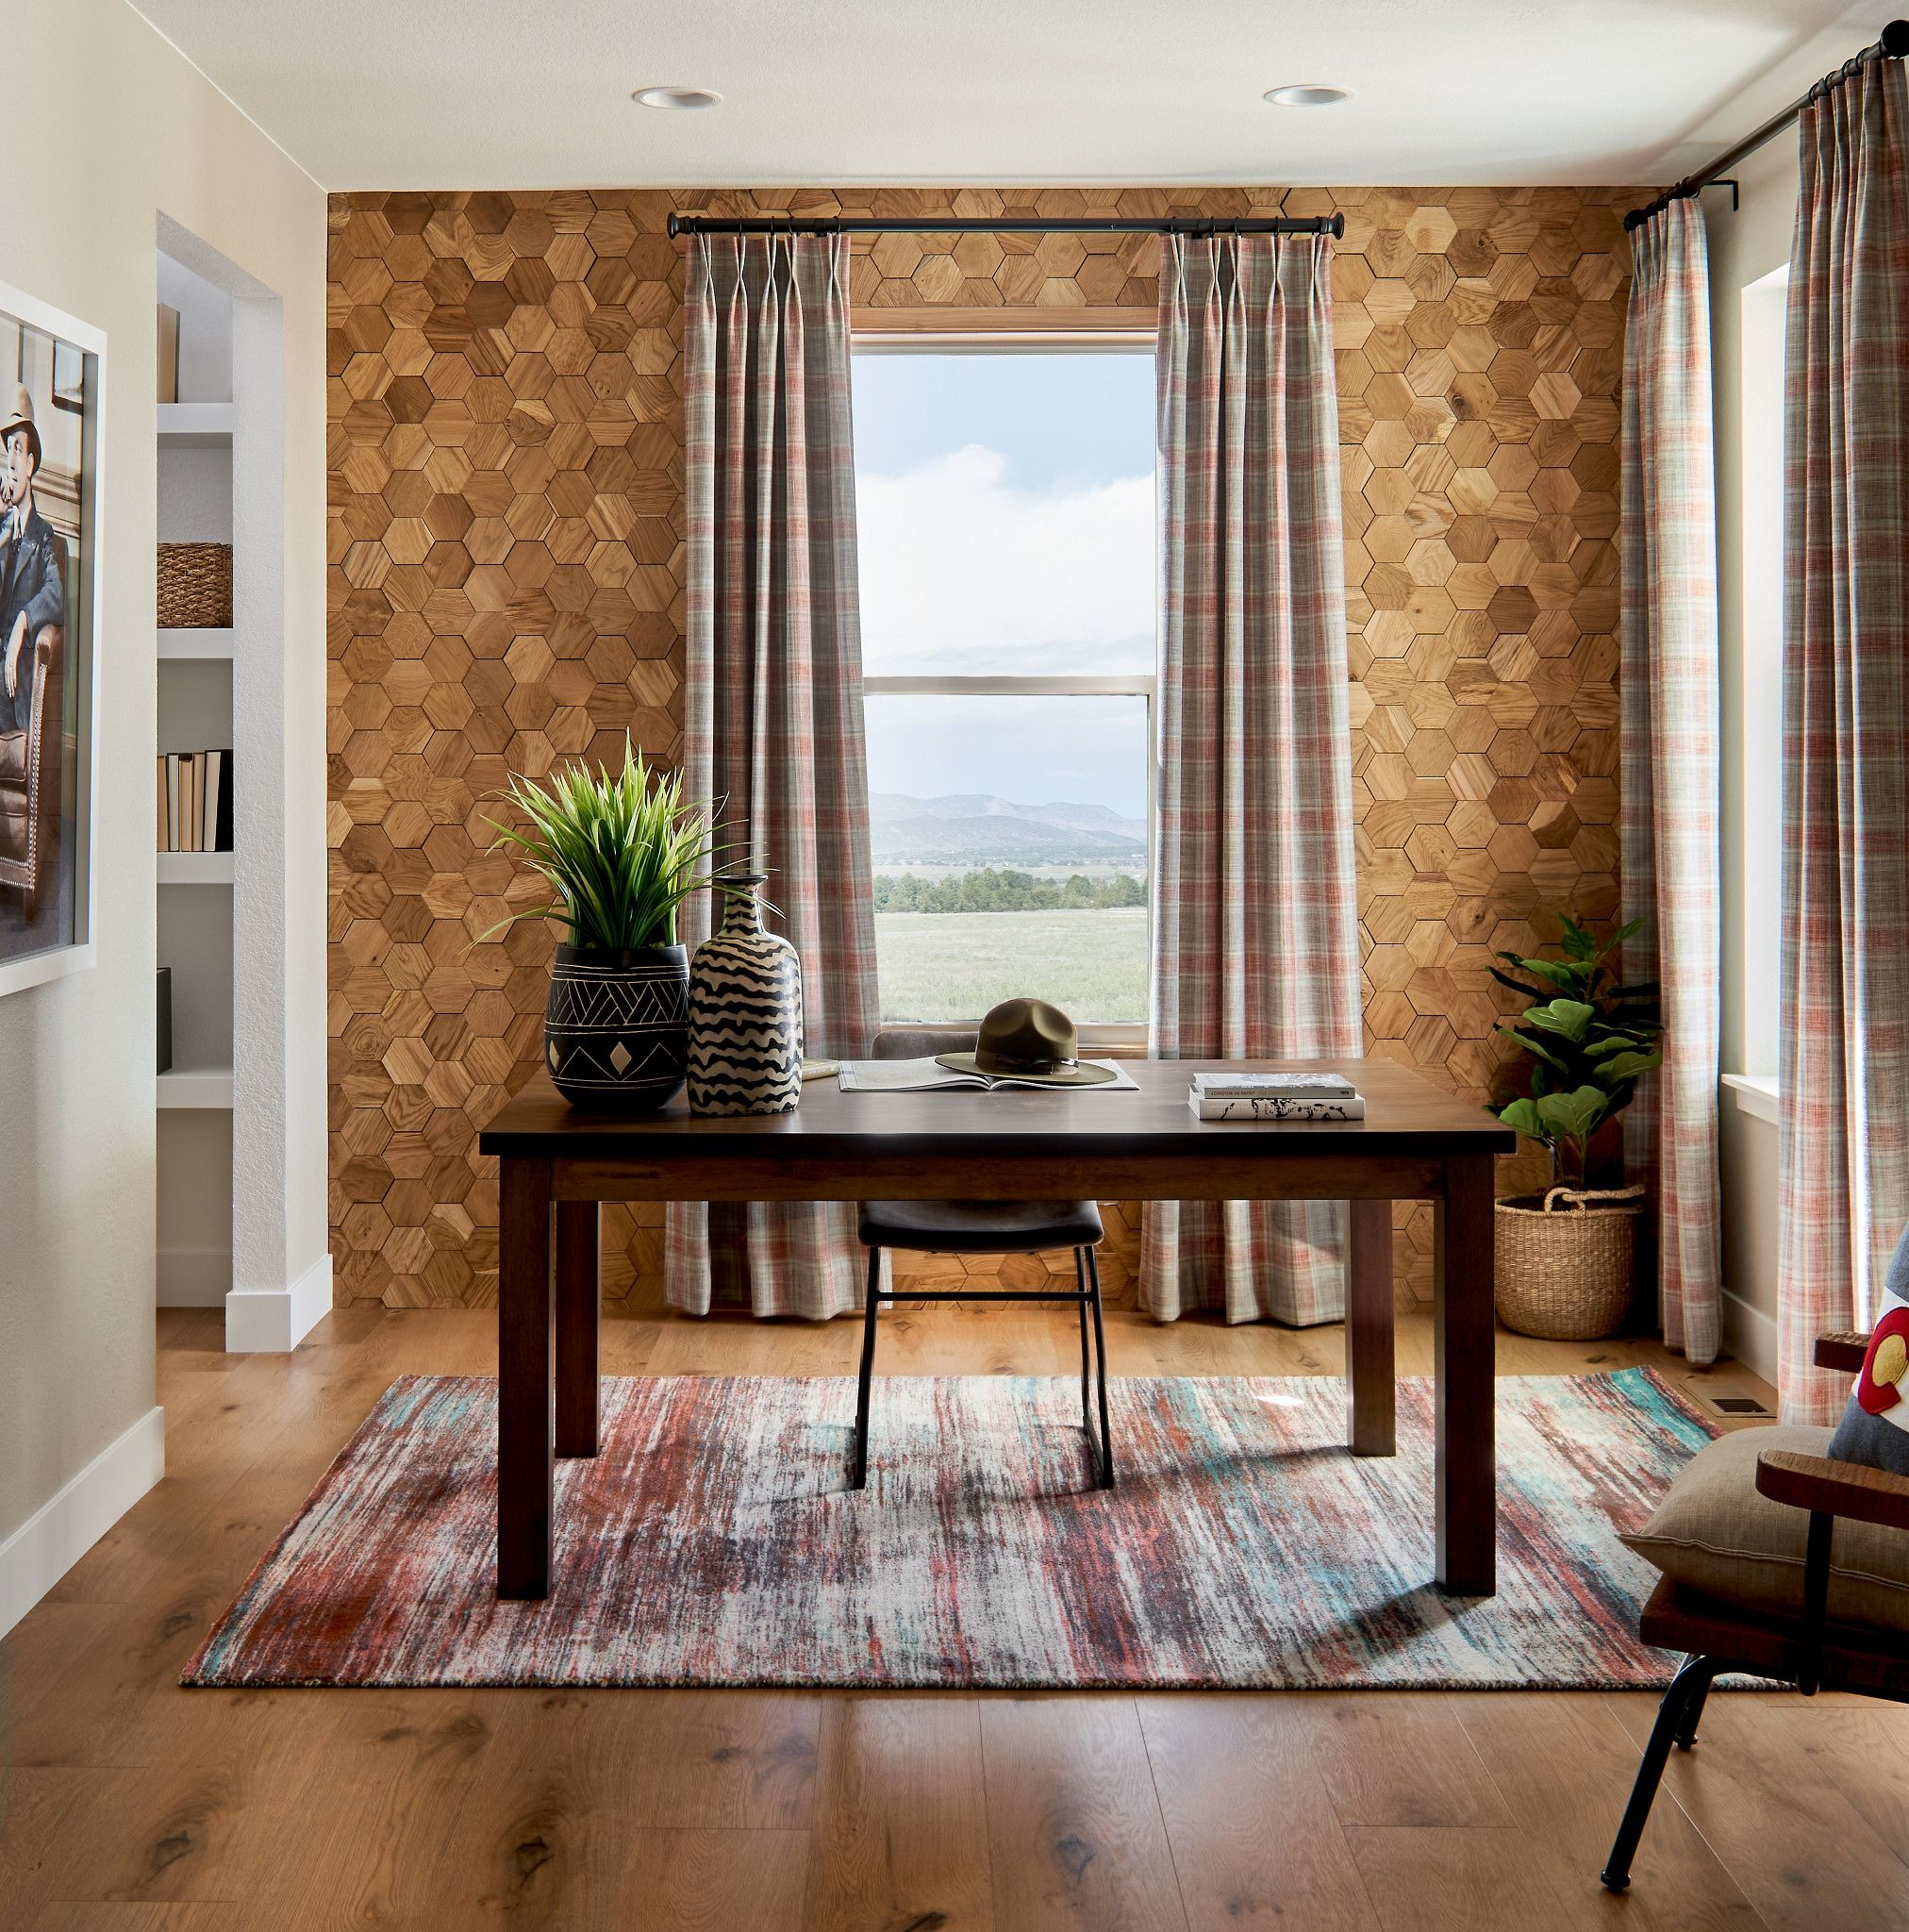 Living Area featured in the 5052 Meadowview By Shea Homes in Denver, CO